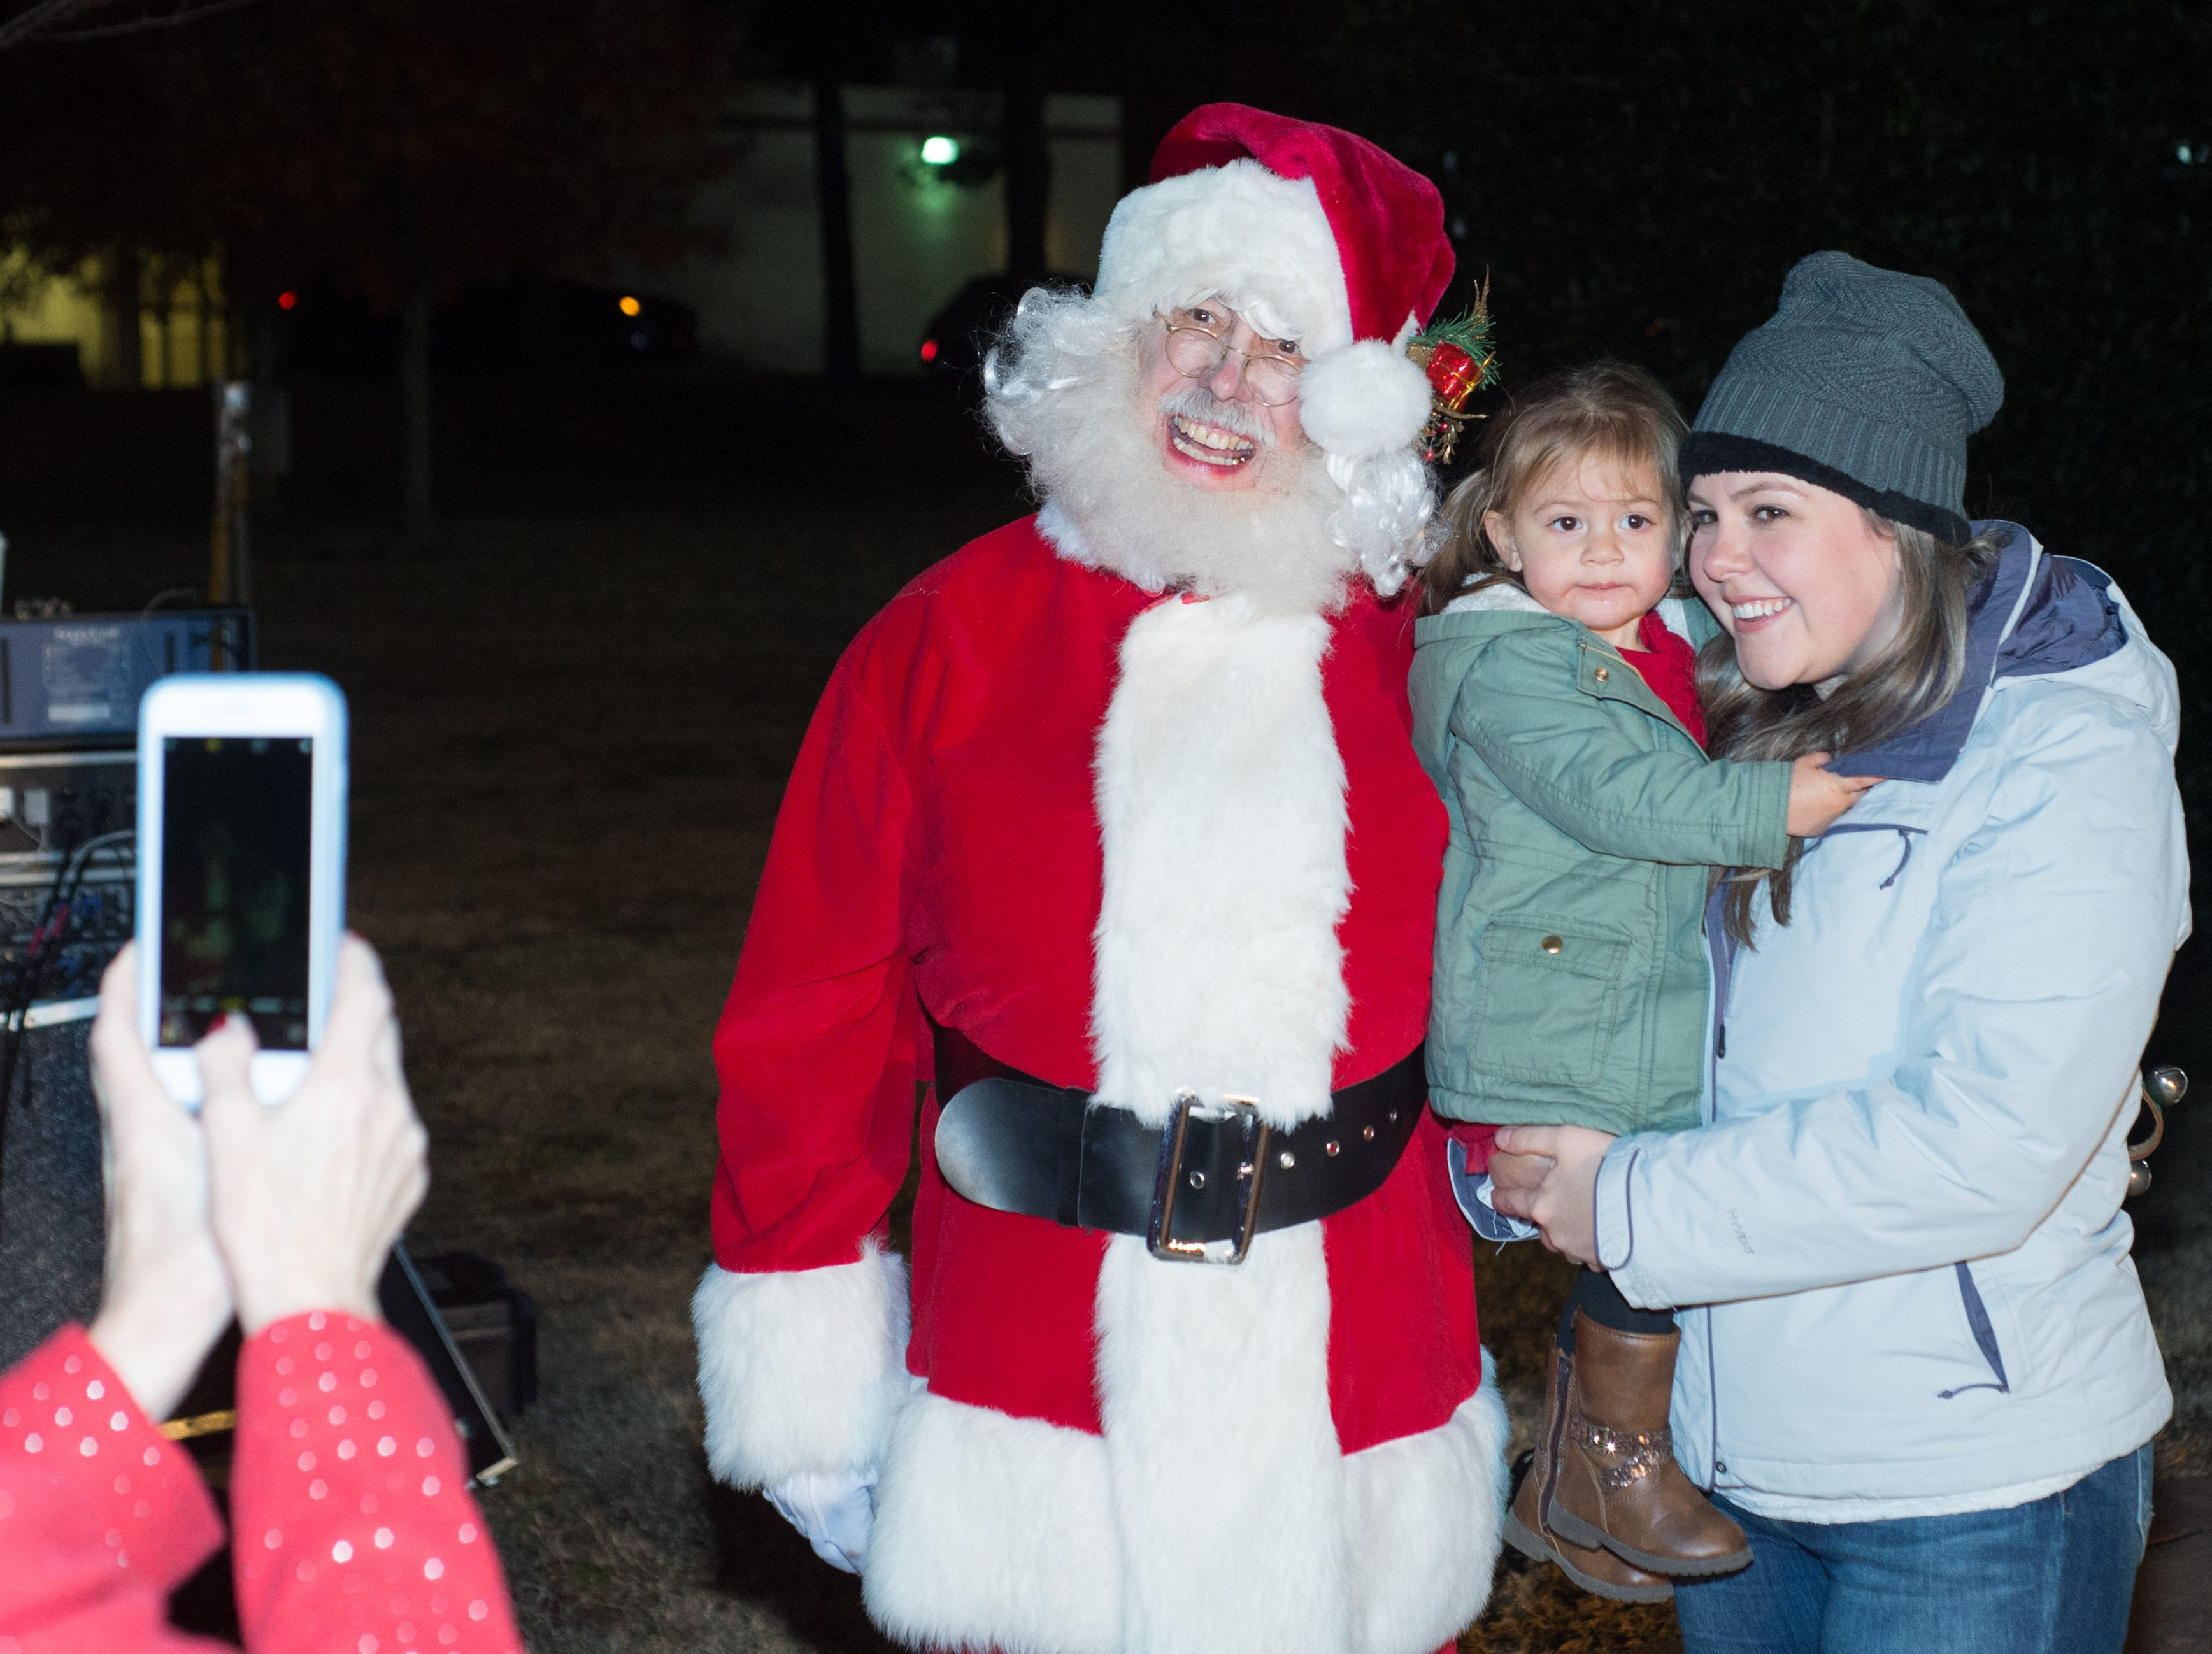 Brylie and Rachel Freeman get their photo with Santa during the Hendersonville HolidayFest Annual Tree Lighting Ceremony at Memorial Park on Sunday, Nov. 25.